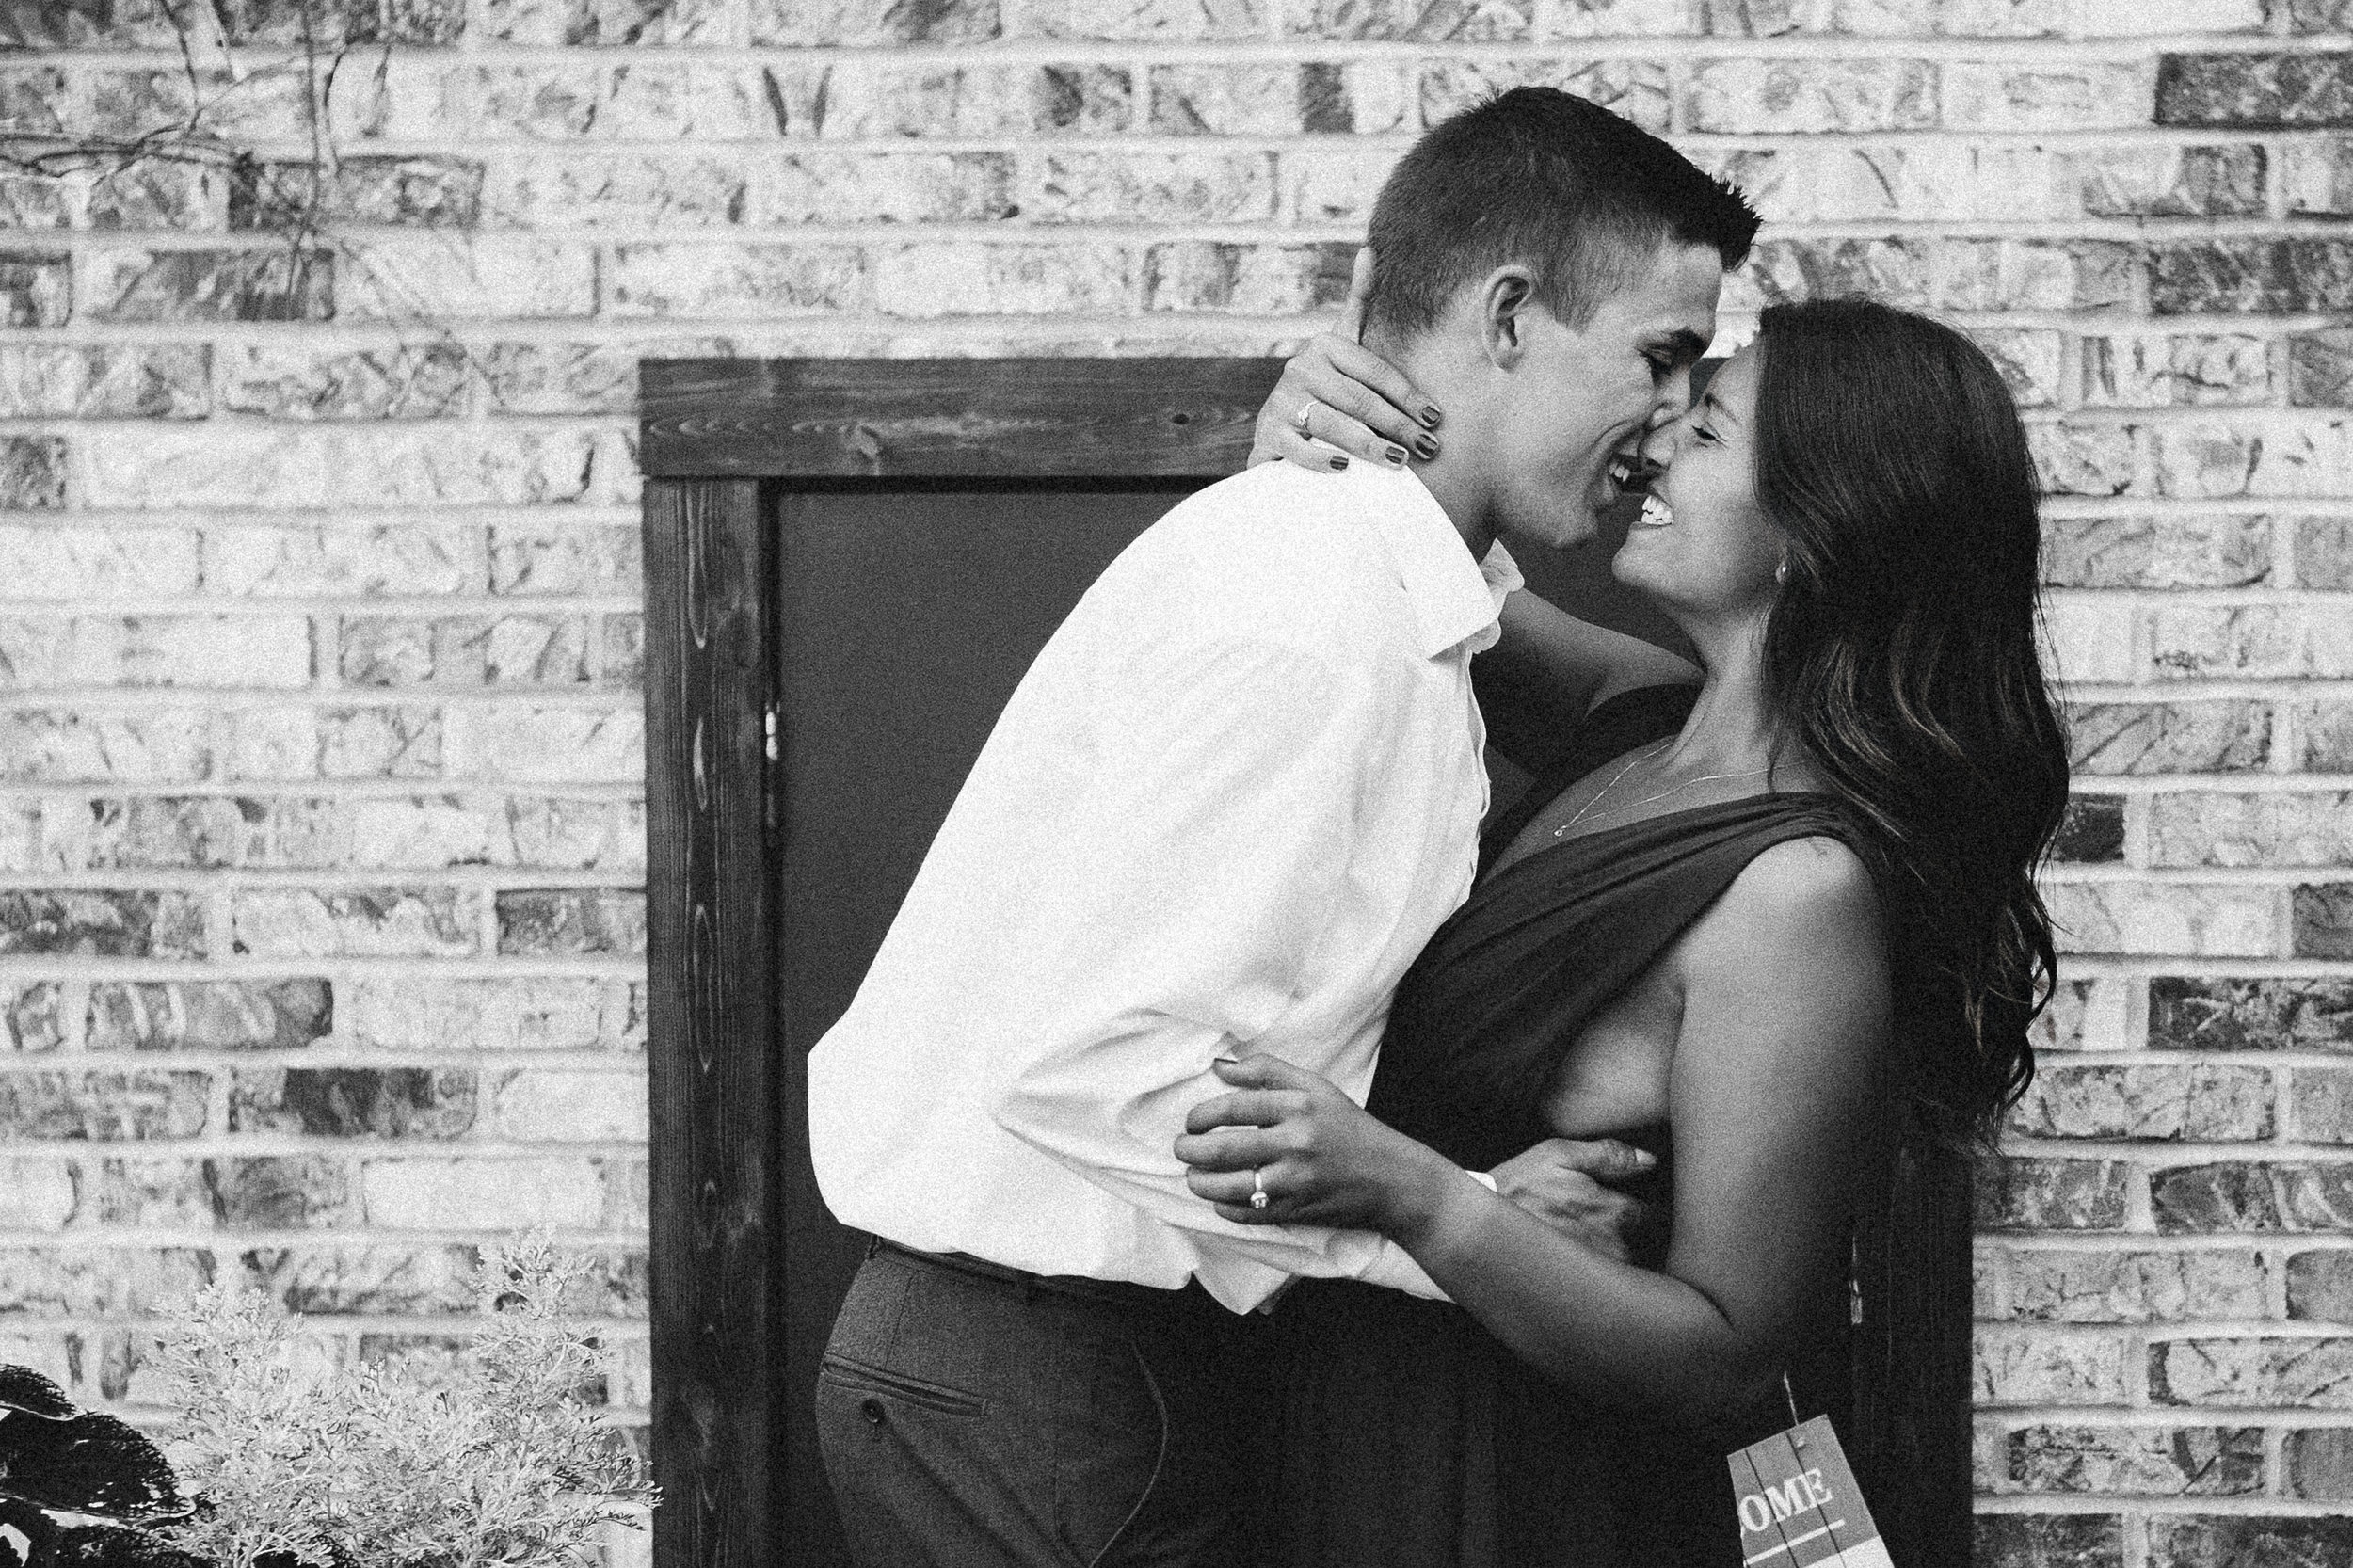 Man dips his fiancé back as he rubs noses with her in front of a brick wall.